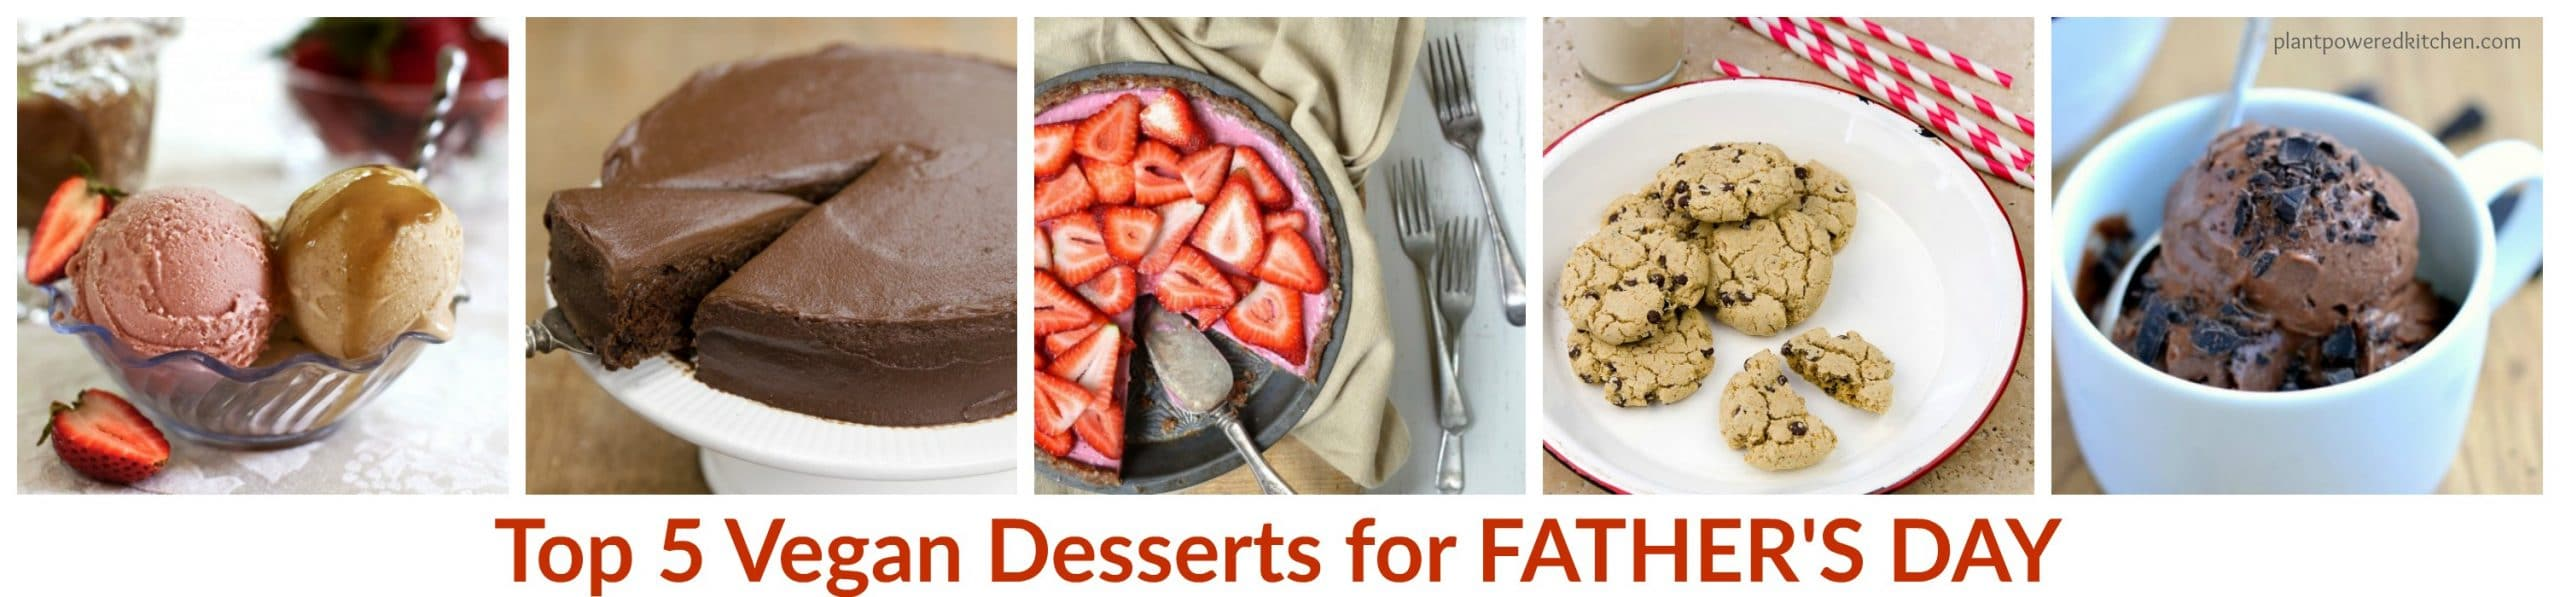 Top 5 Vegan Desserts for Father's Day #vegan #wfpb #dairyfree #fathersday #desserts plantpoweredktichen.com